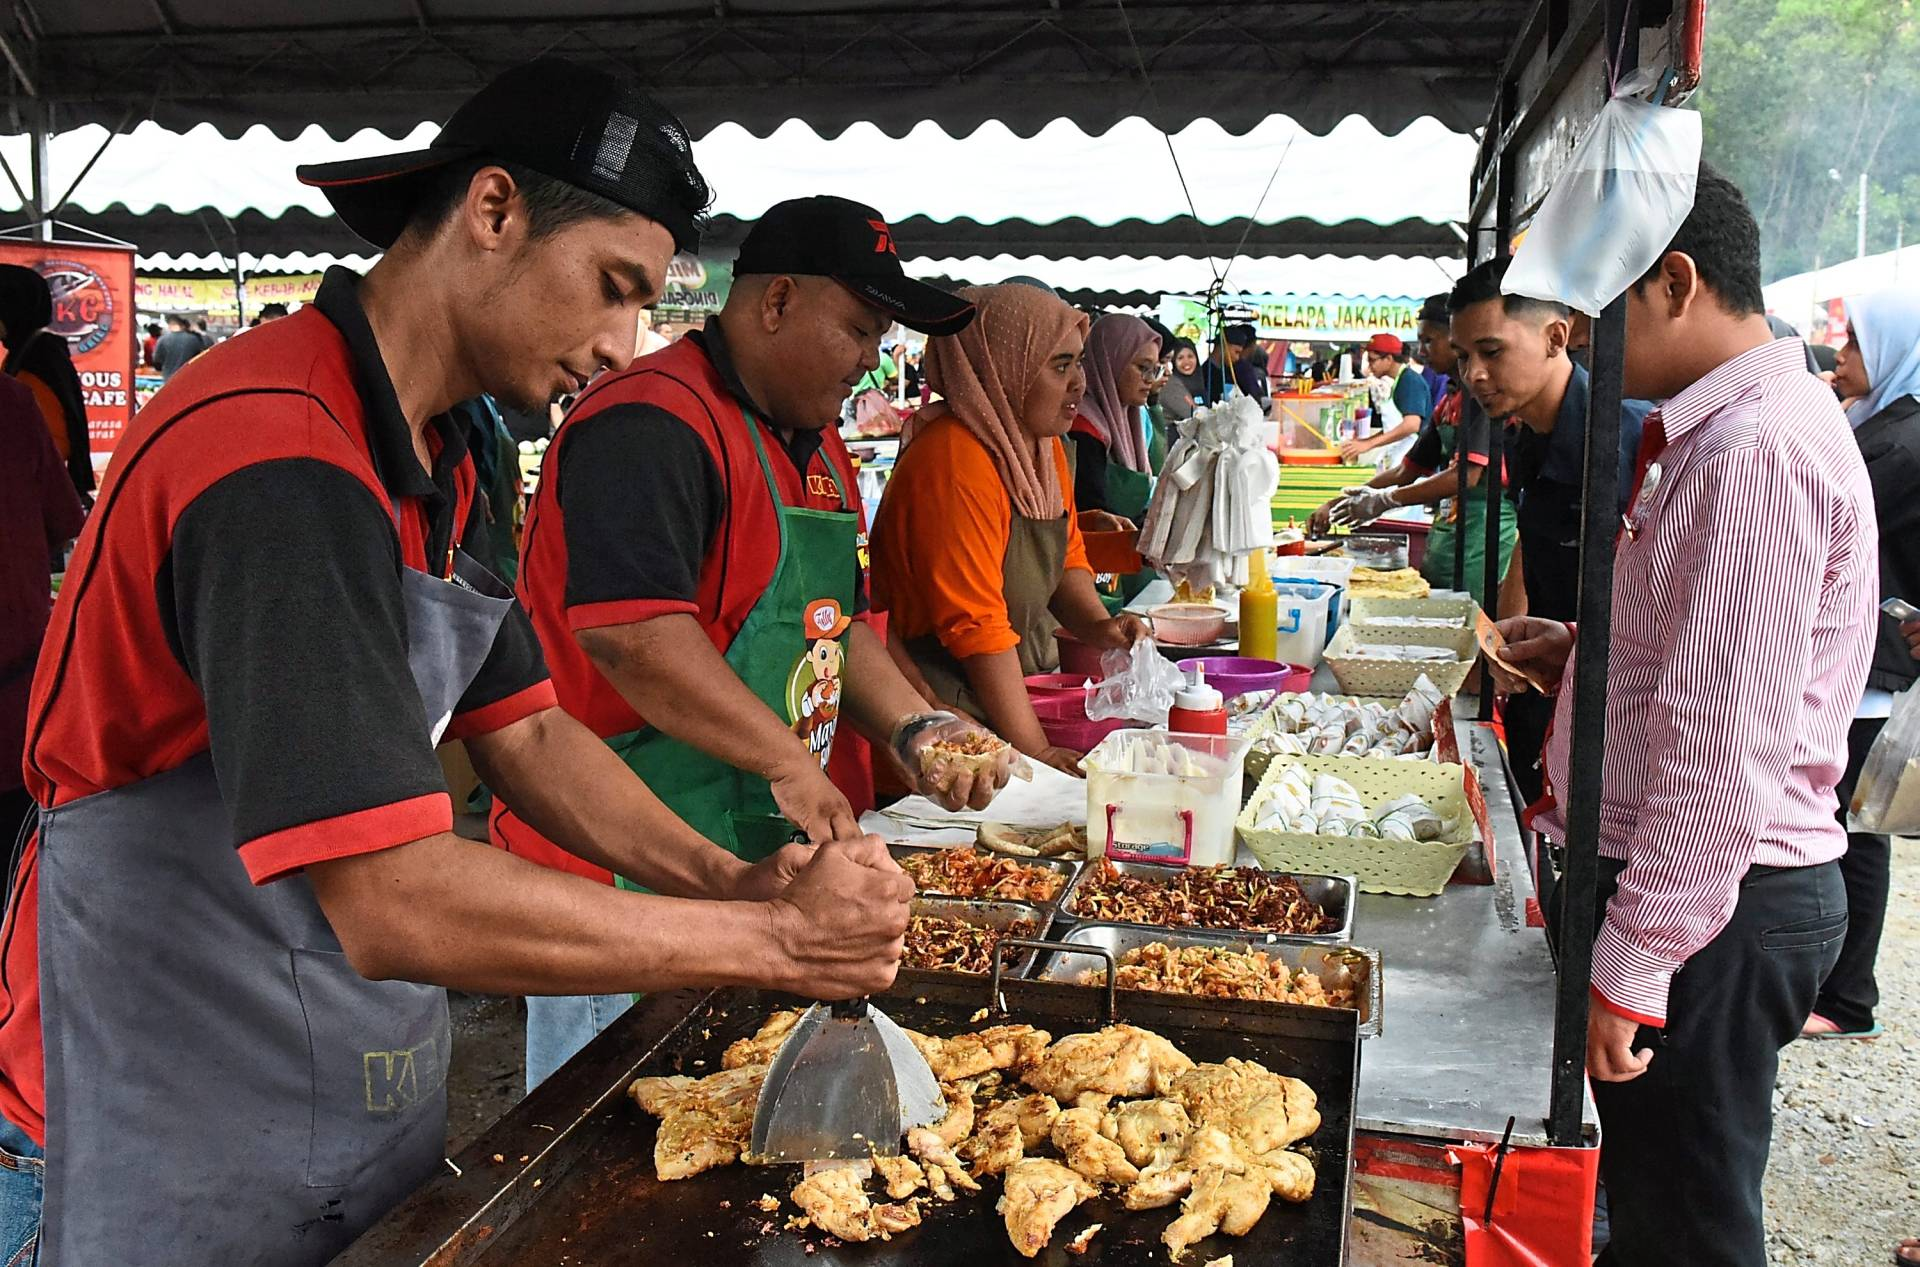 All food handlers in Malaysia are required to get a typhoid vaccination by law to prevent the possibility of spreading this infectious disease.